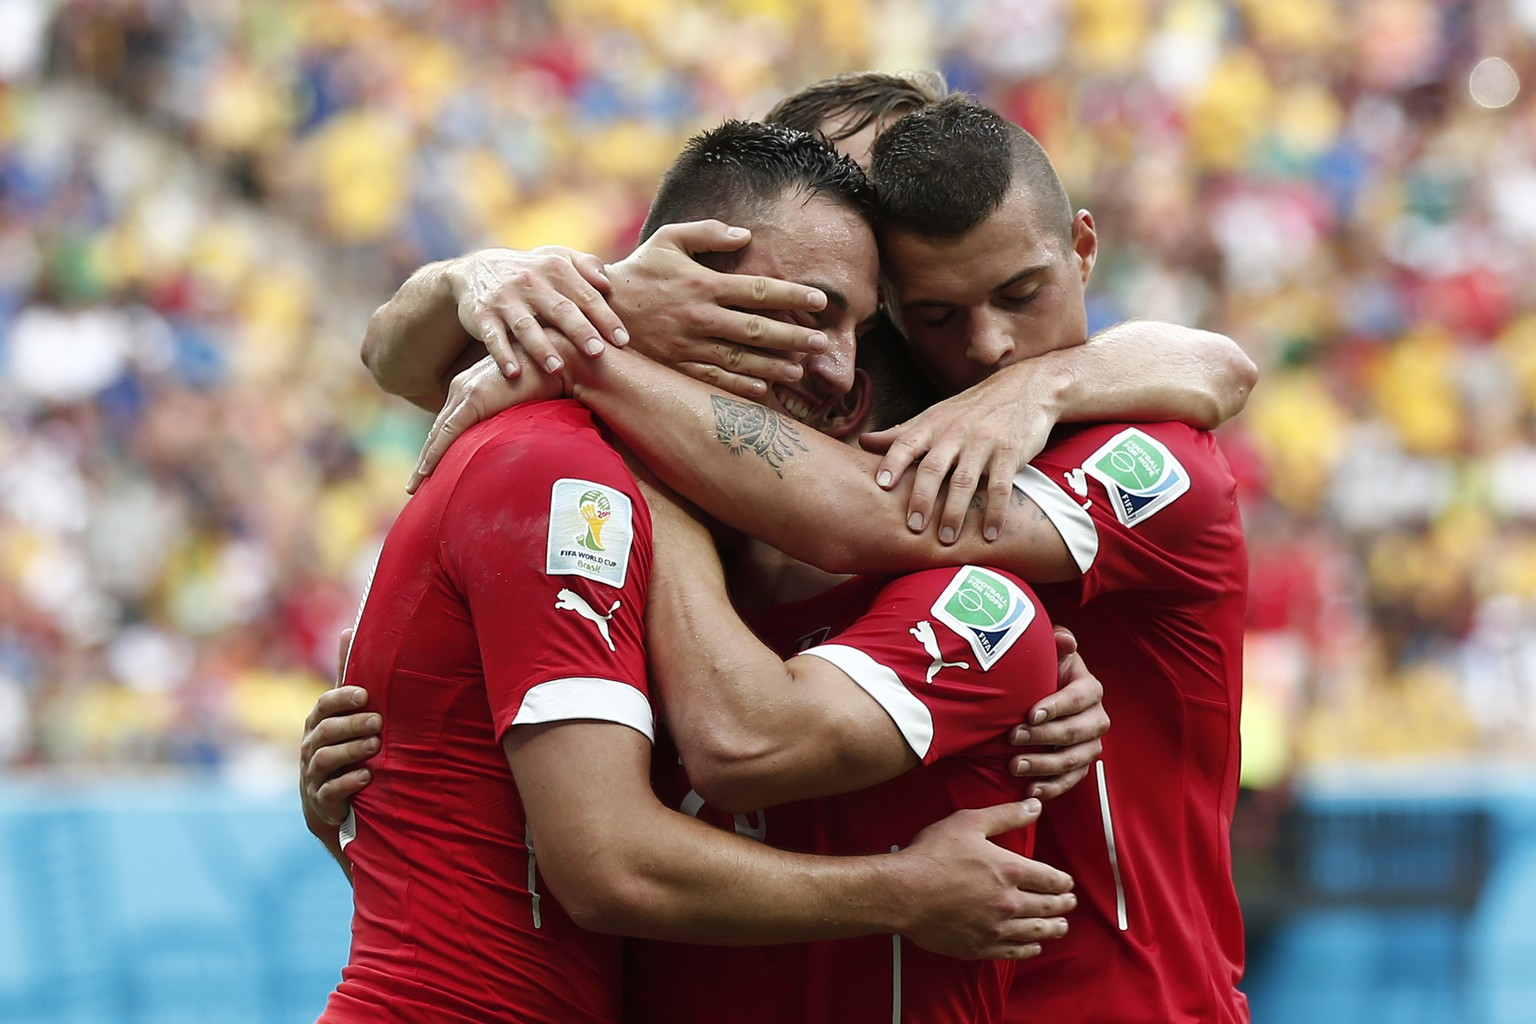 From left: Switzerland's Josip Drmic, Xherdan Shaqiri, Stephan Lichtsteiner and Granit Xhaka celebrate after Xherdan Shaqiri scored the 2-0 during the group E preliminary round match between Switzerland and Honduras in the Arena da Amazonia in Manaus, Brazil, Wednesday, June 25, 2014. (KEYSTONE/Peter Klaunzer)